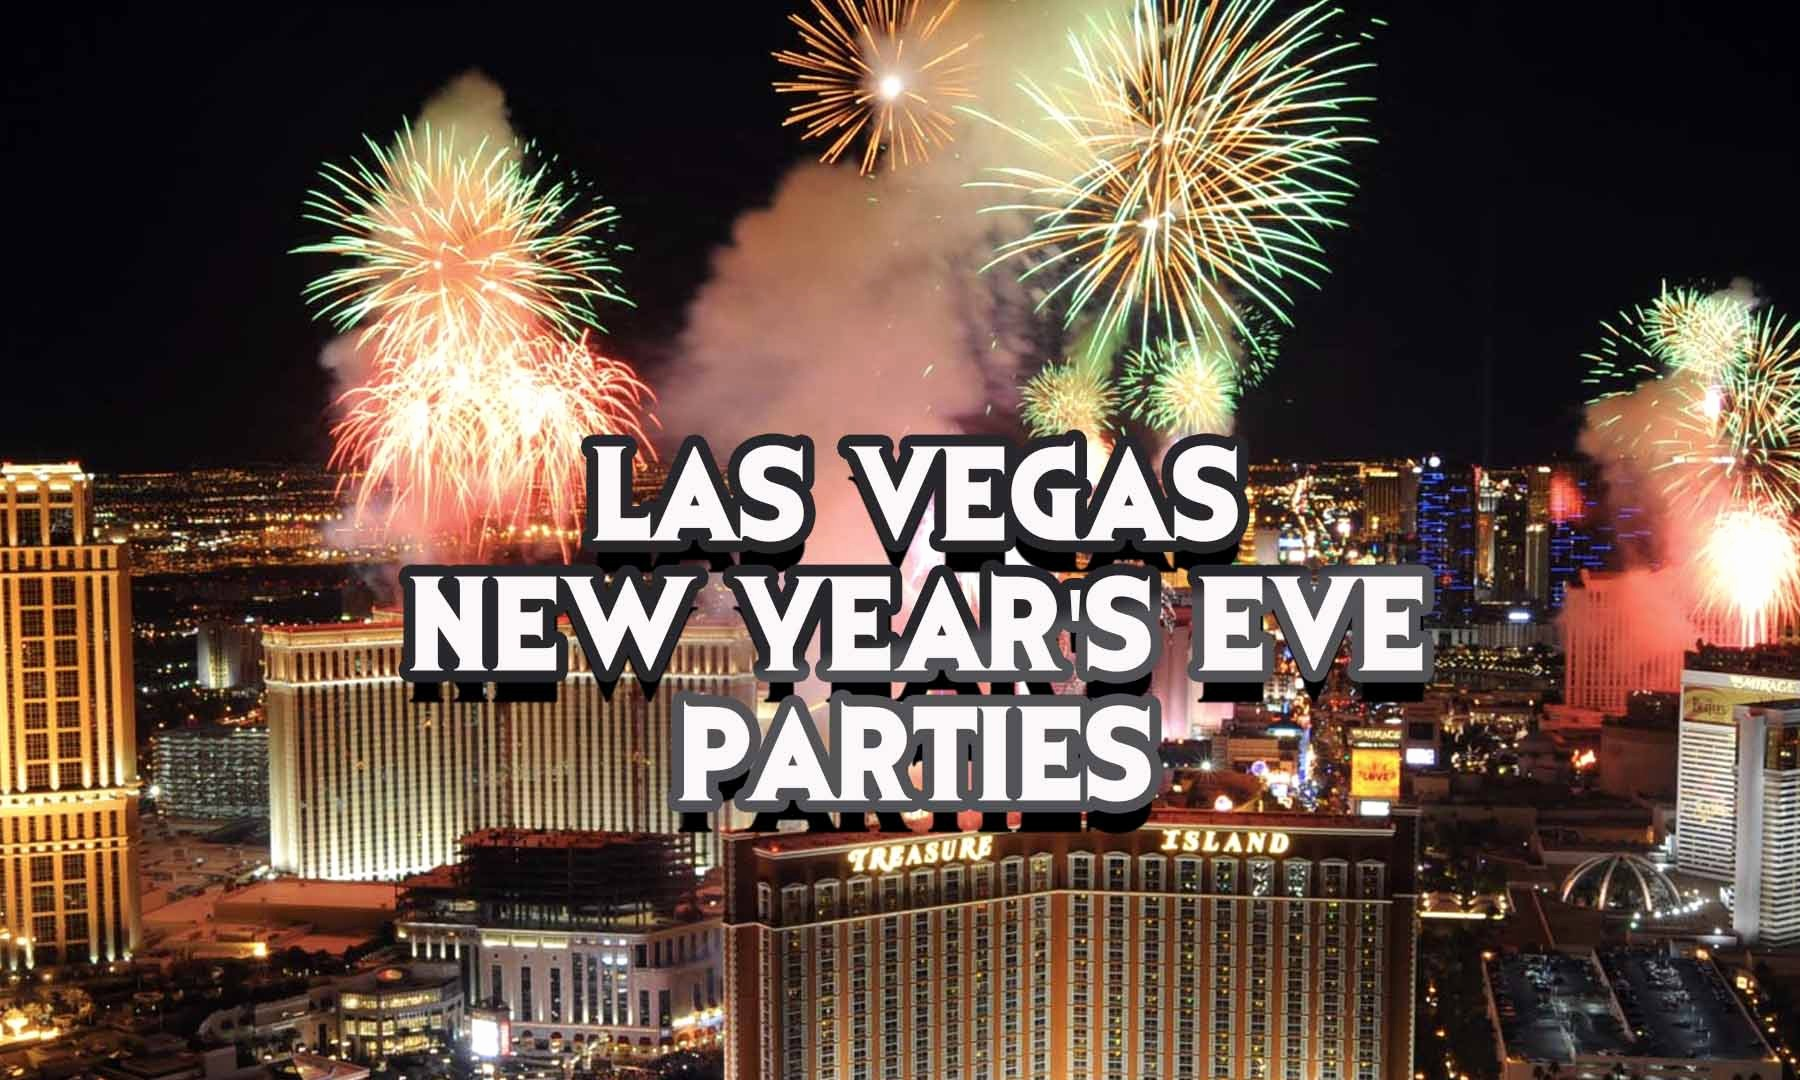 New Years Eve Party Checklist Inspirational New Year S Eve Parties In Las Vegas La Epic Club Crawls